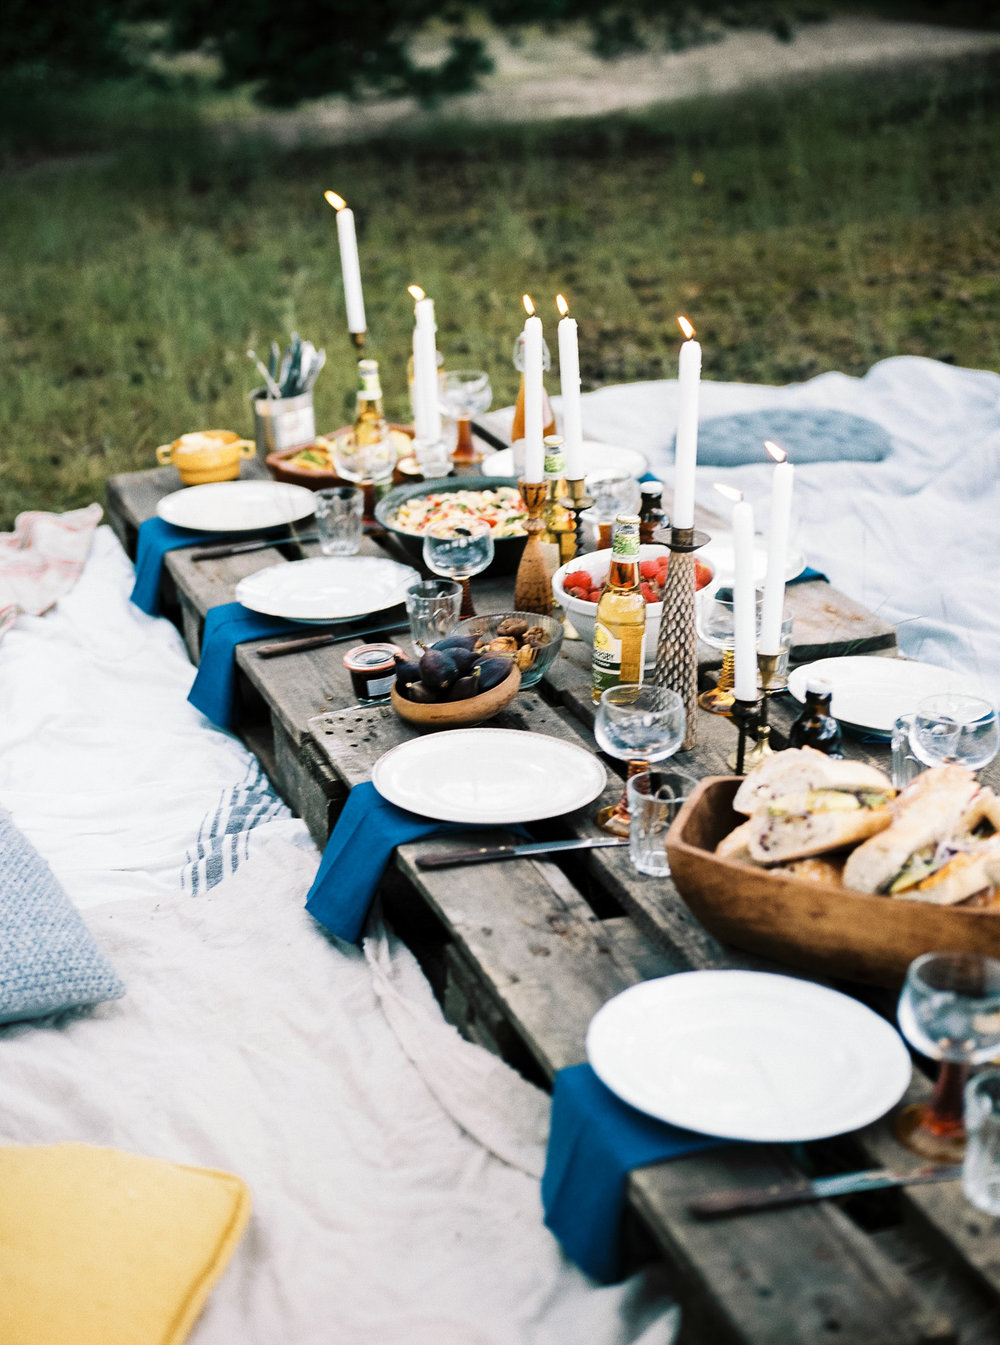 forest-picnic-with-friends-inspire-styling-hanke-arkenbout-photography-65.jpg